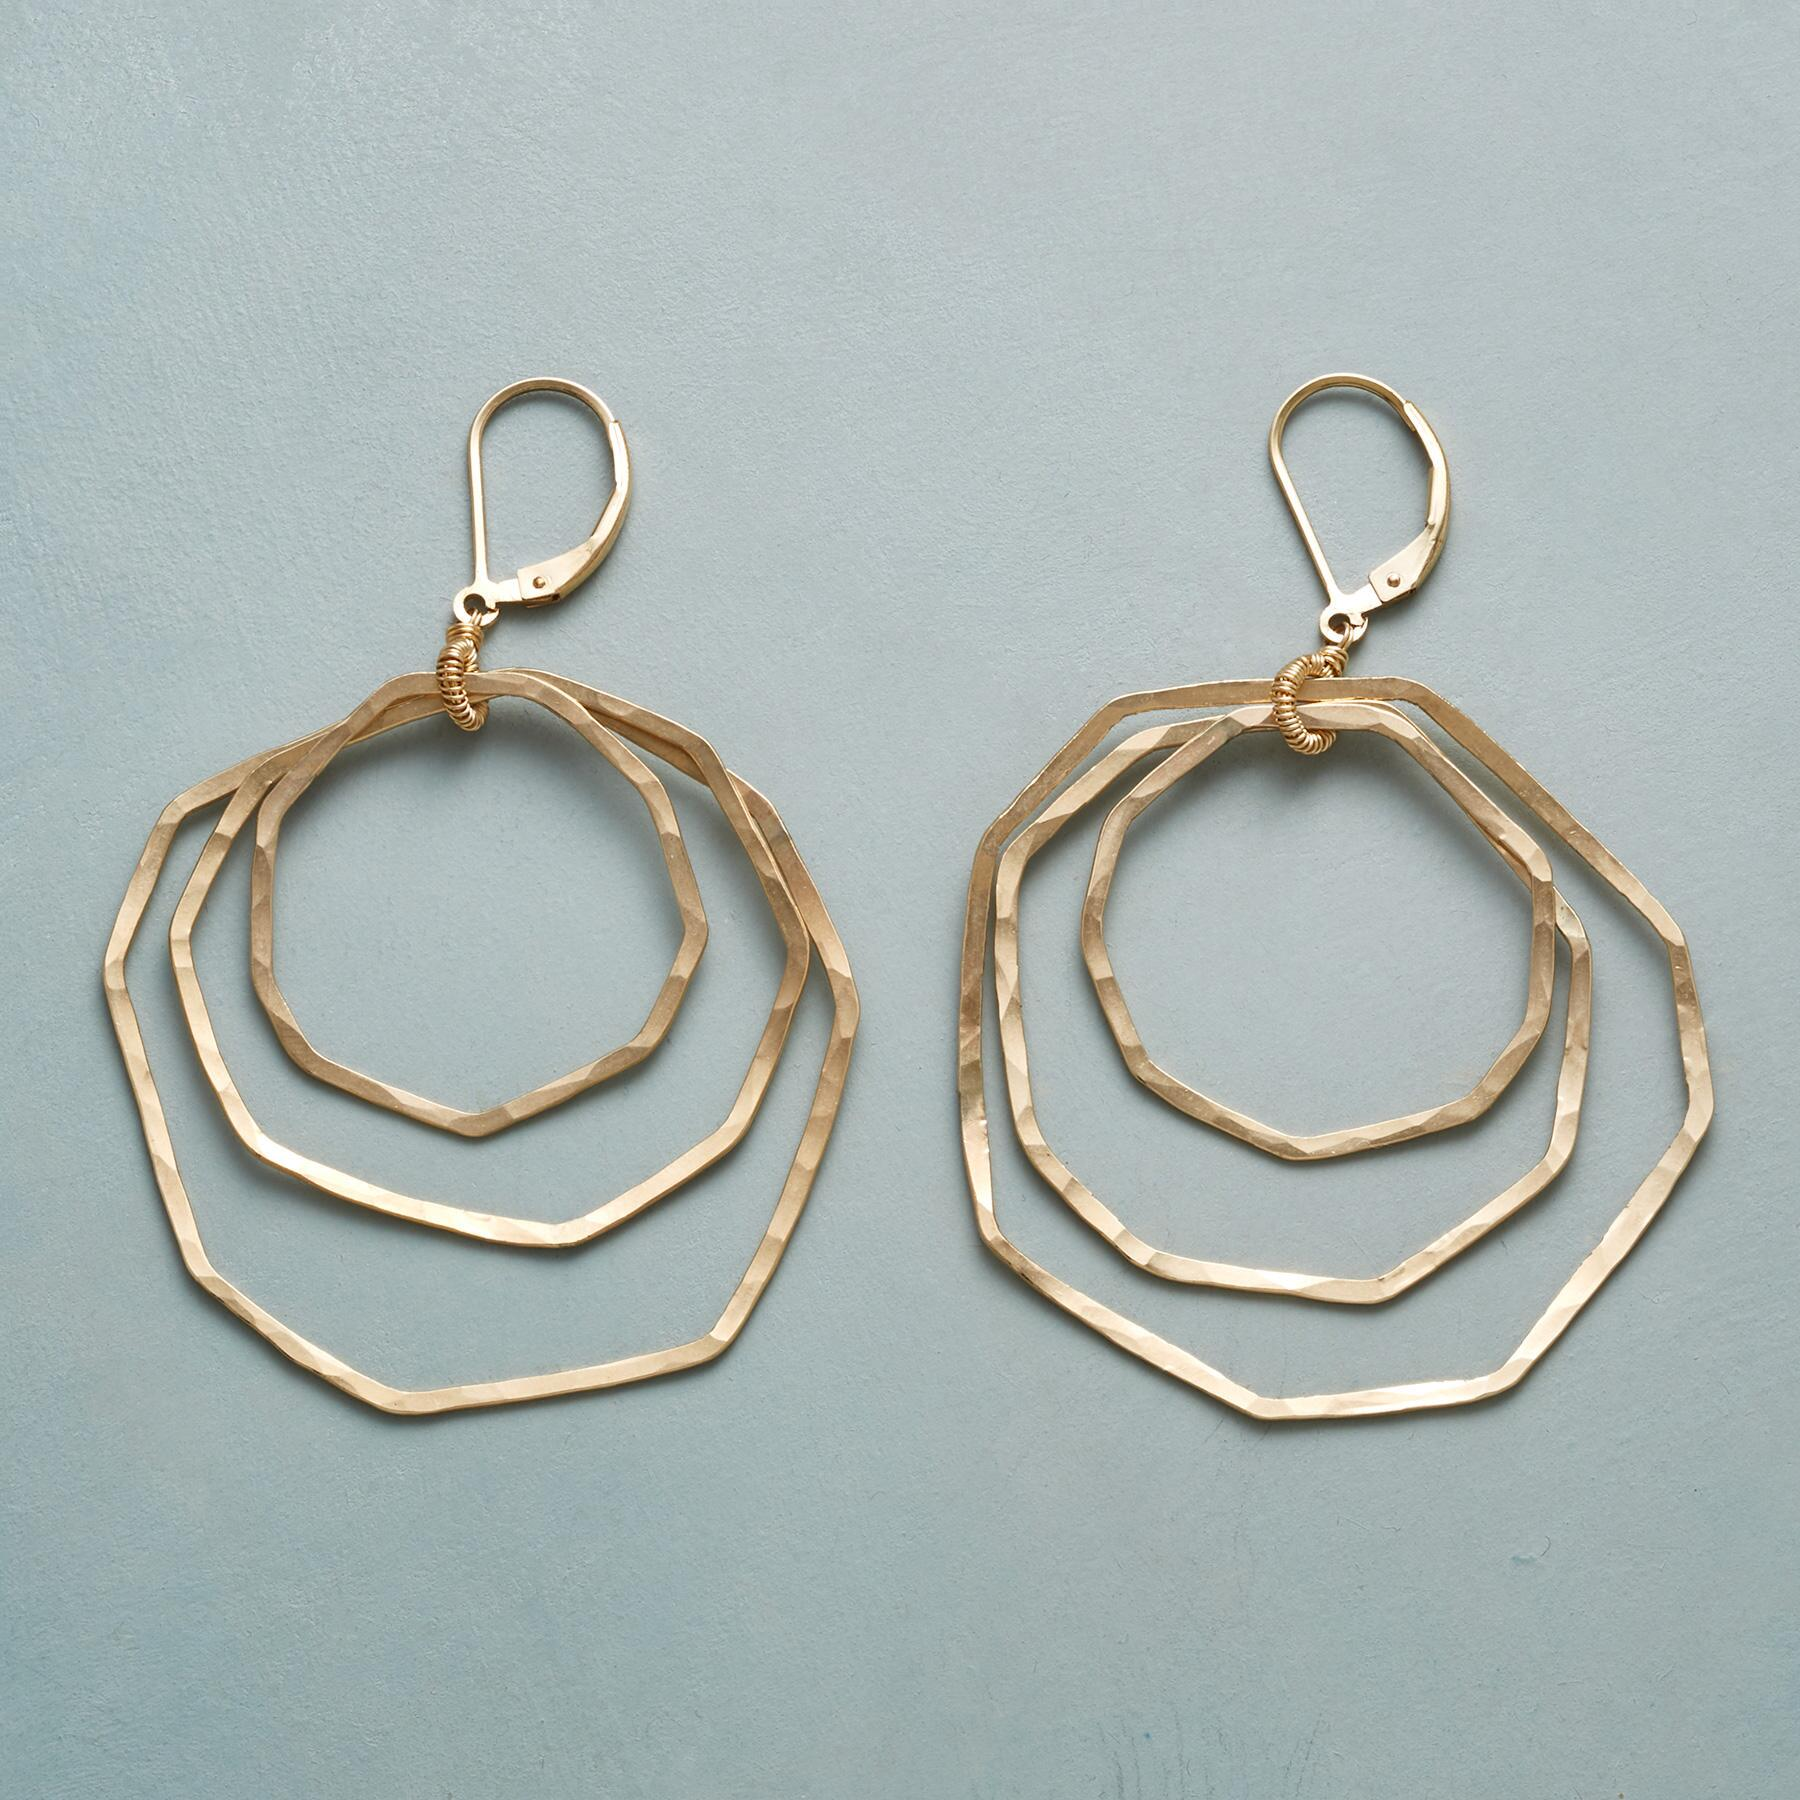 ALL OCTAGON EARRINGS: View 1